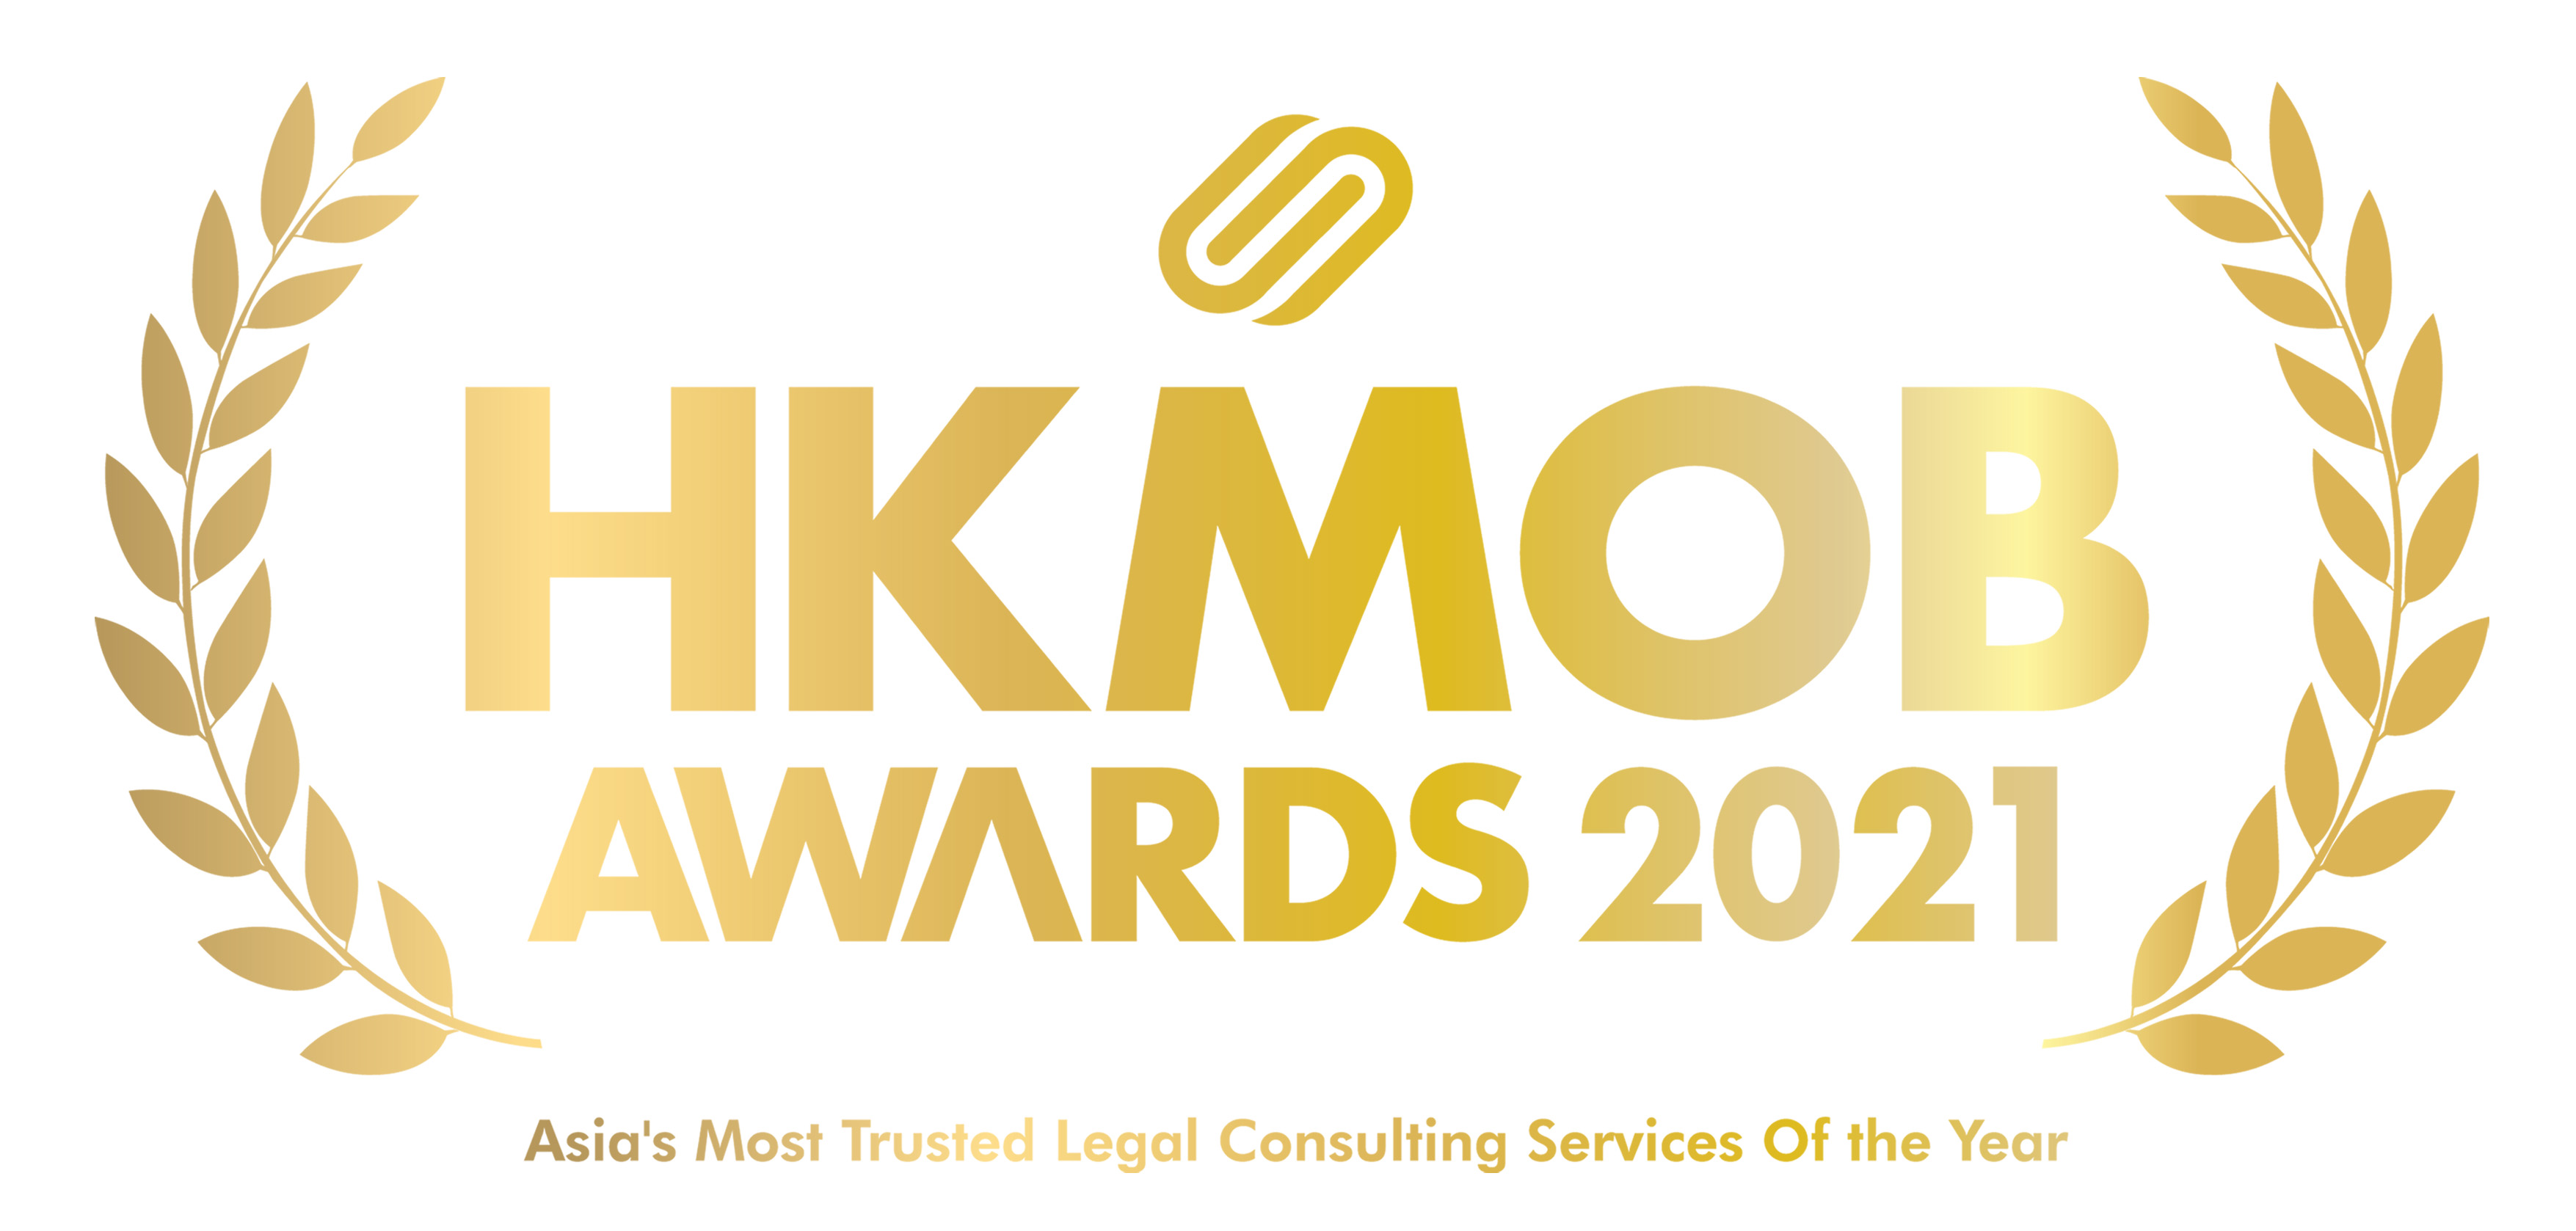 CORPHUB HKMOB Awards 2021 – Asia's Most Trusted Legal Consulting Services of the Year, LC Lawyers LLP, 2021